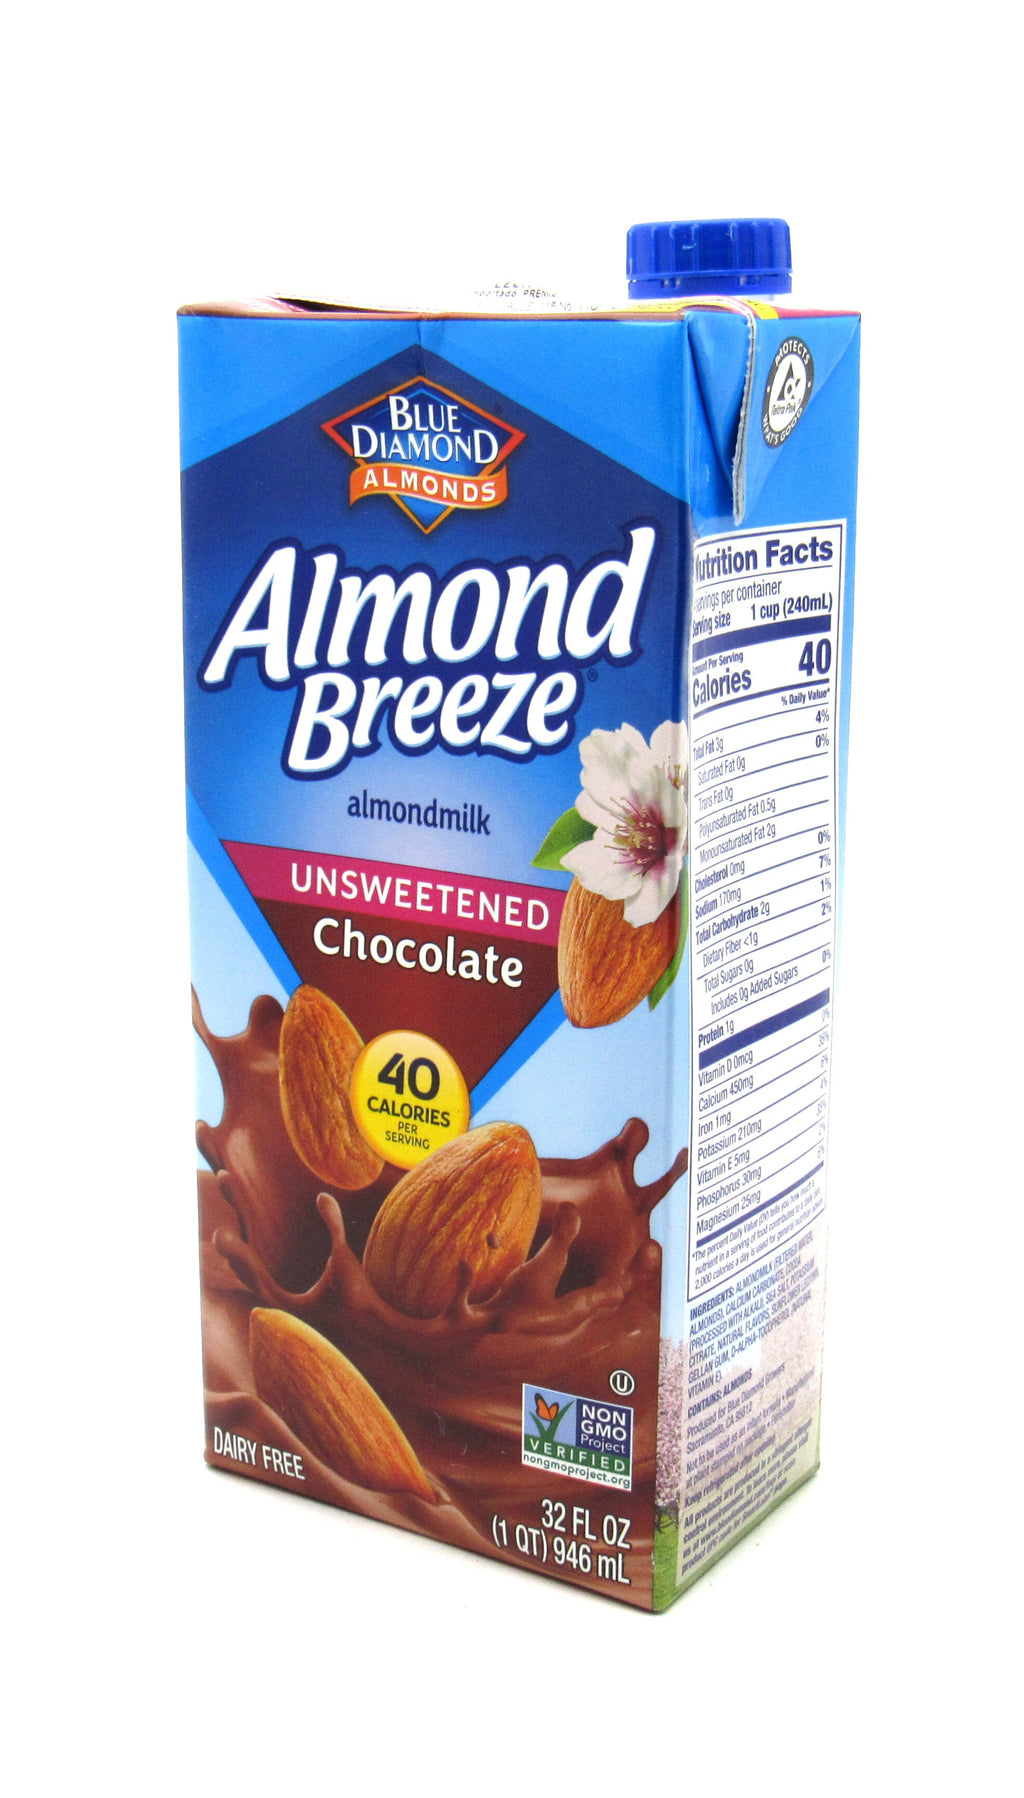 Leche Almendra 946ml (ALMOND BREEZE) Chocolate